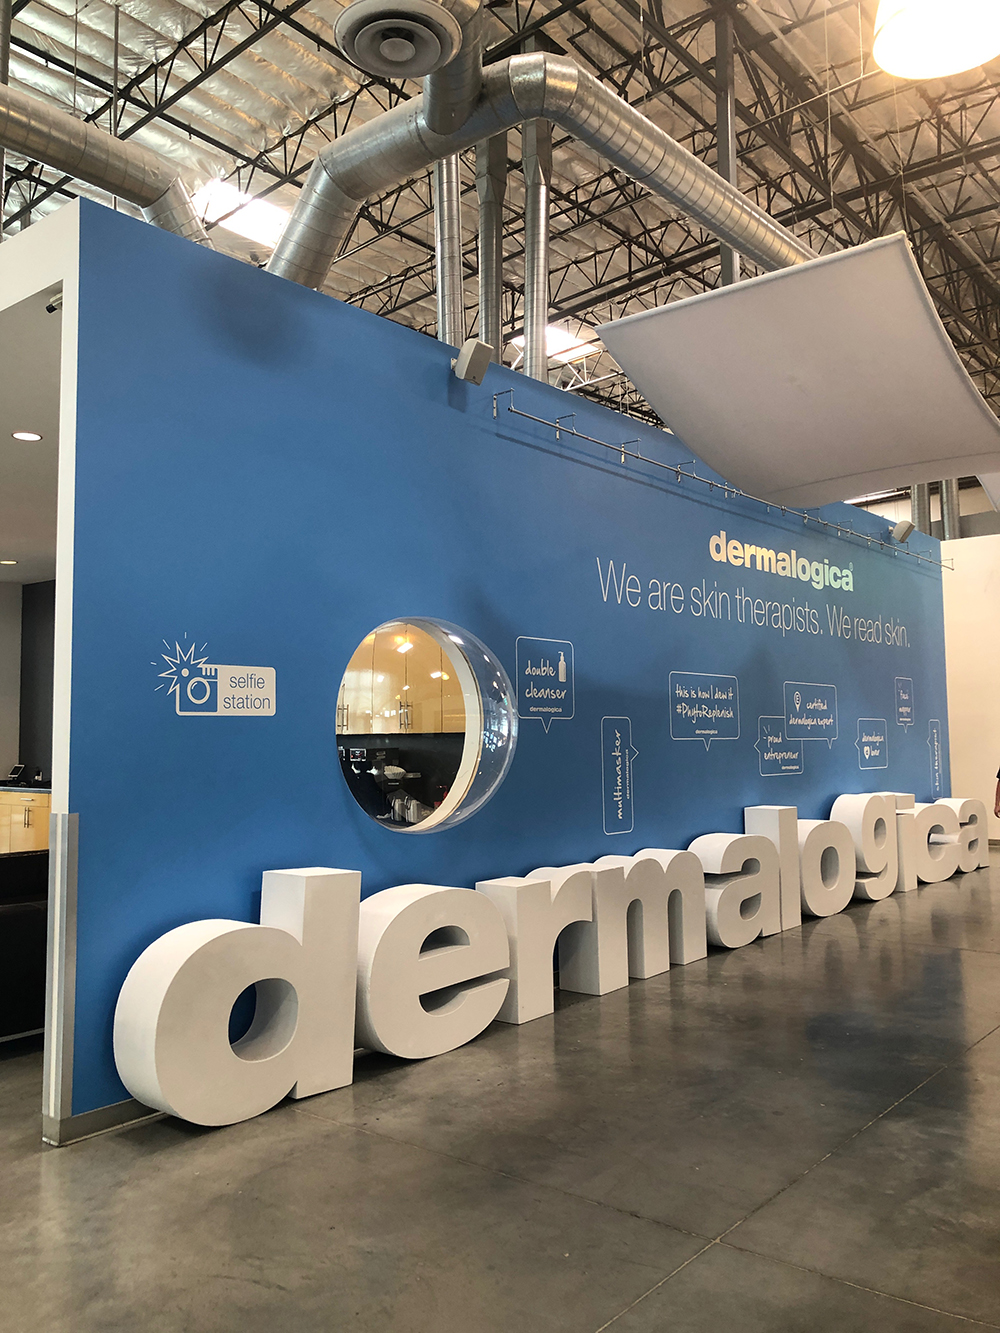 Dermalogica's corporate headquarters incorporate both research and development as well as training facilities.